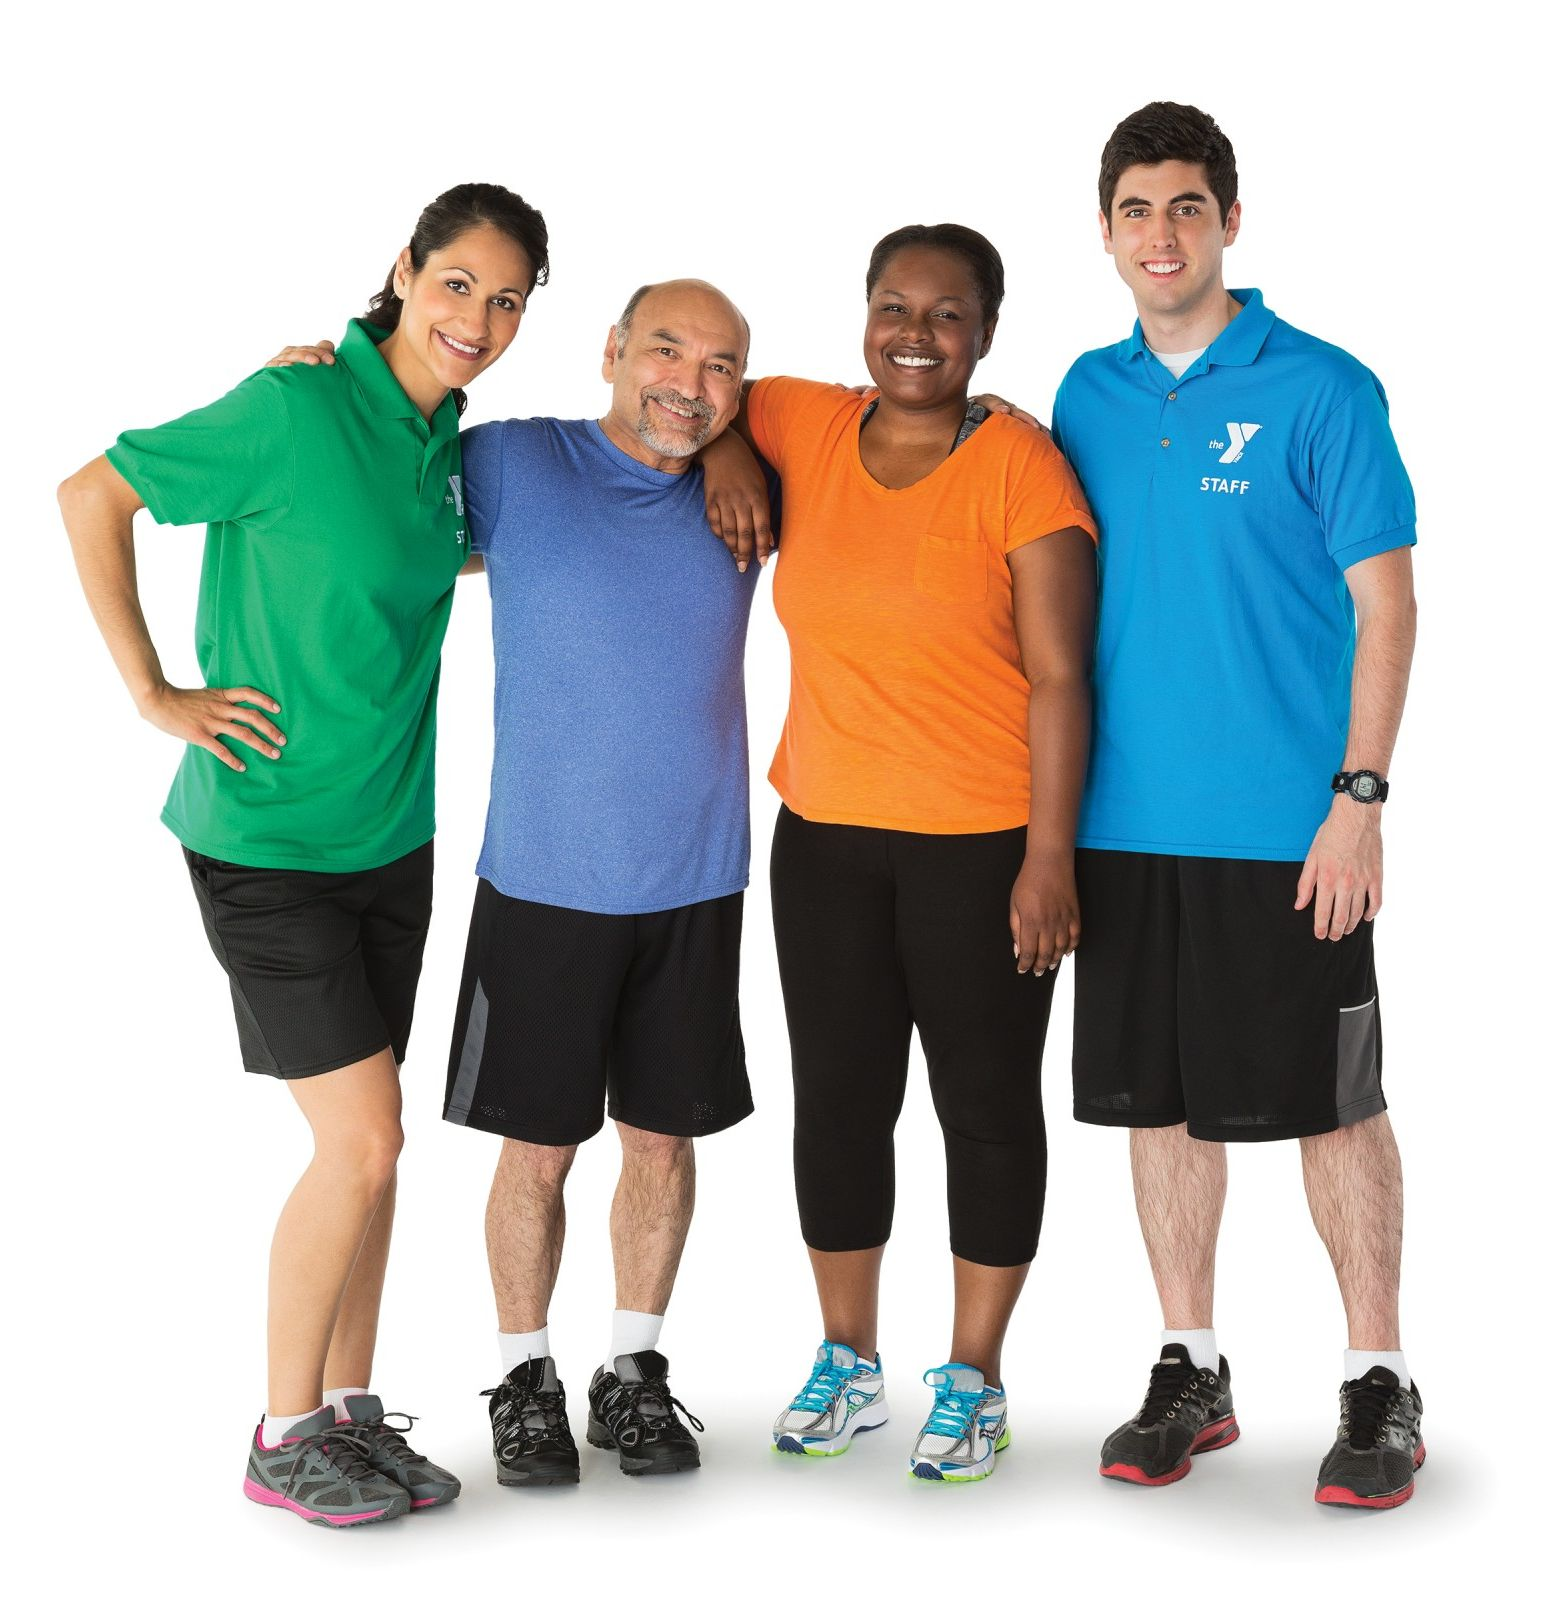 adult programs, fitness, community, ashland ymca